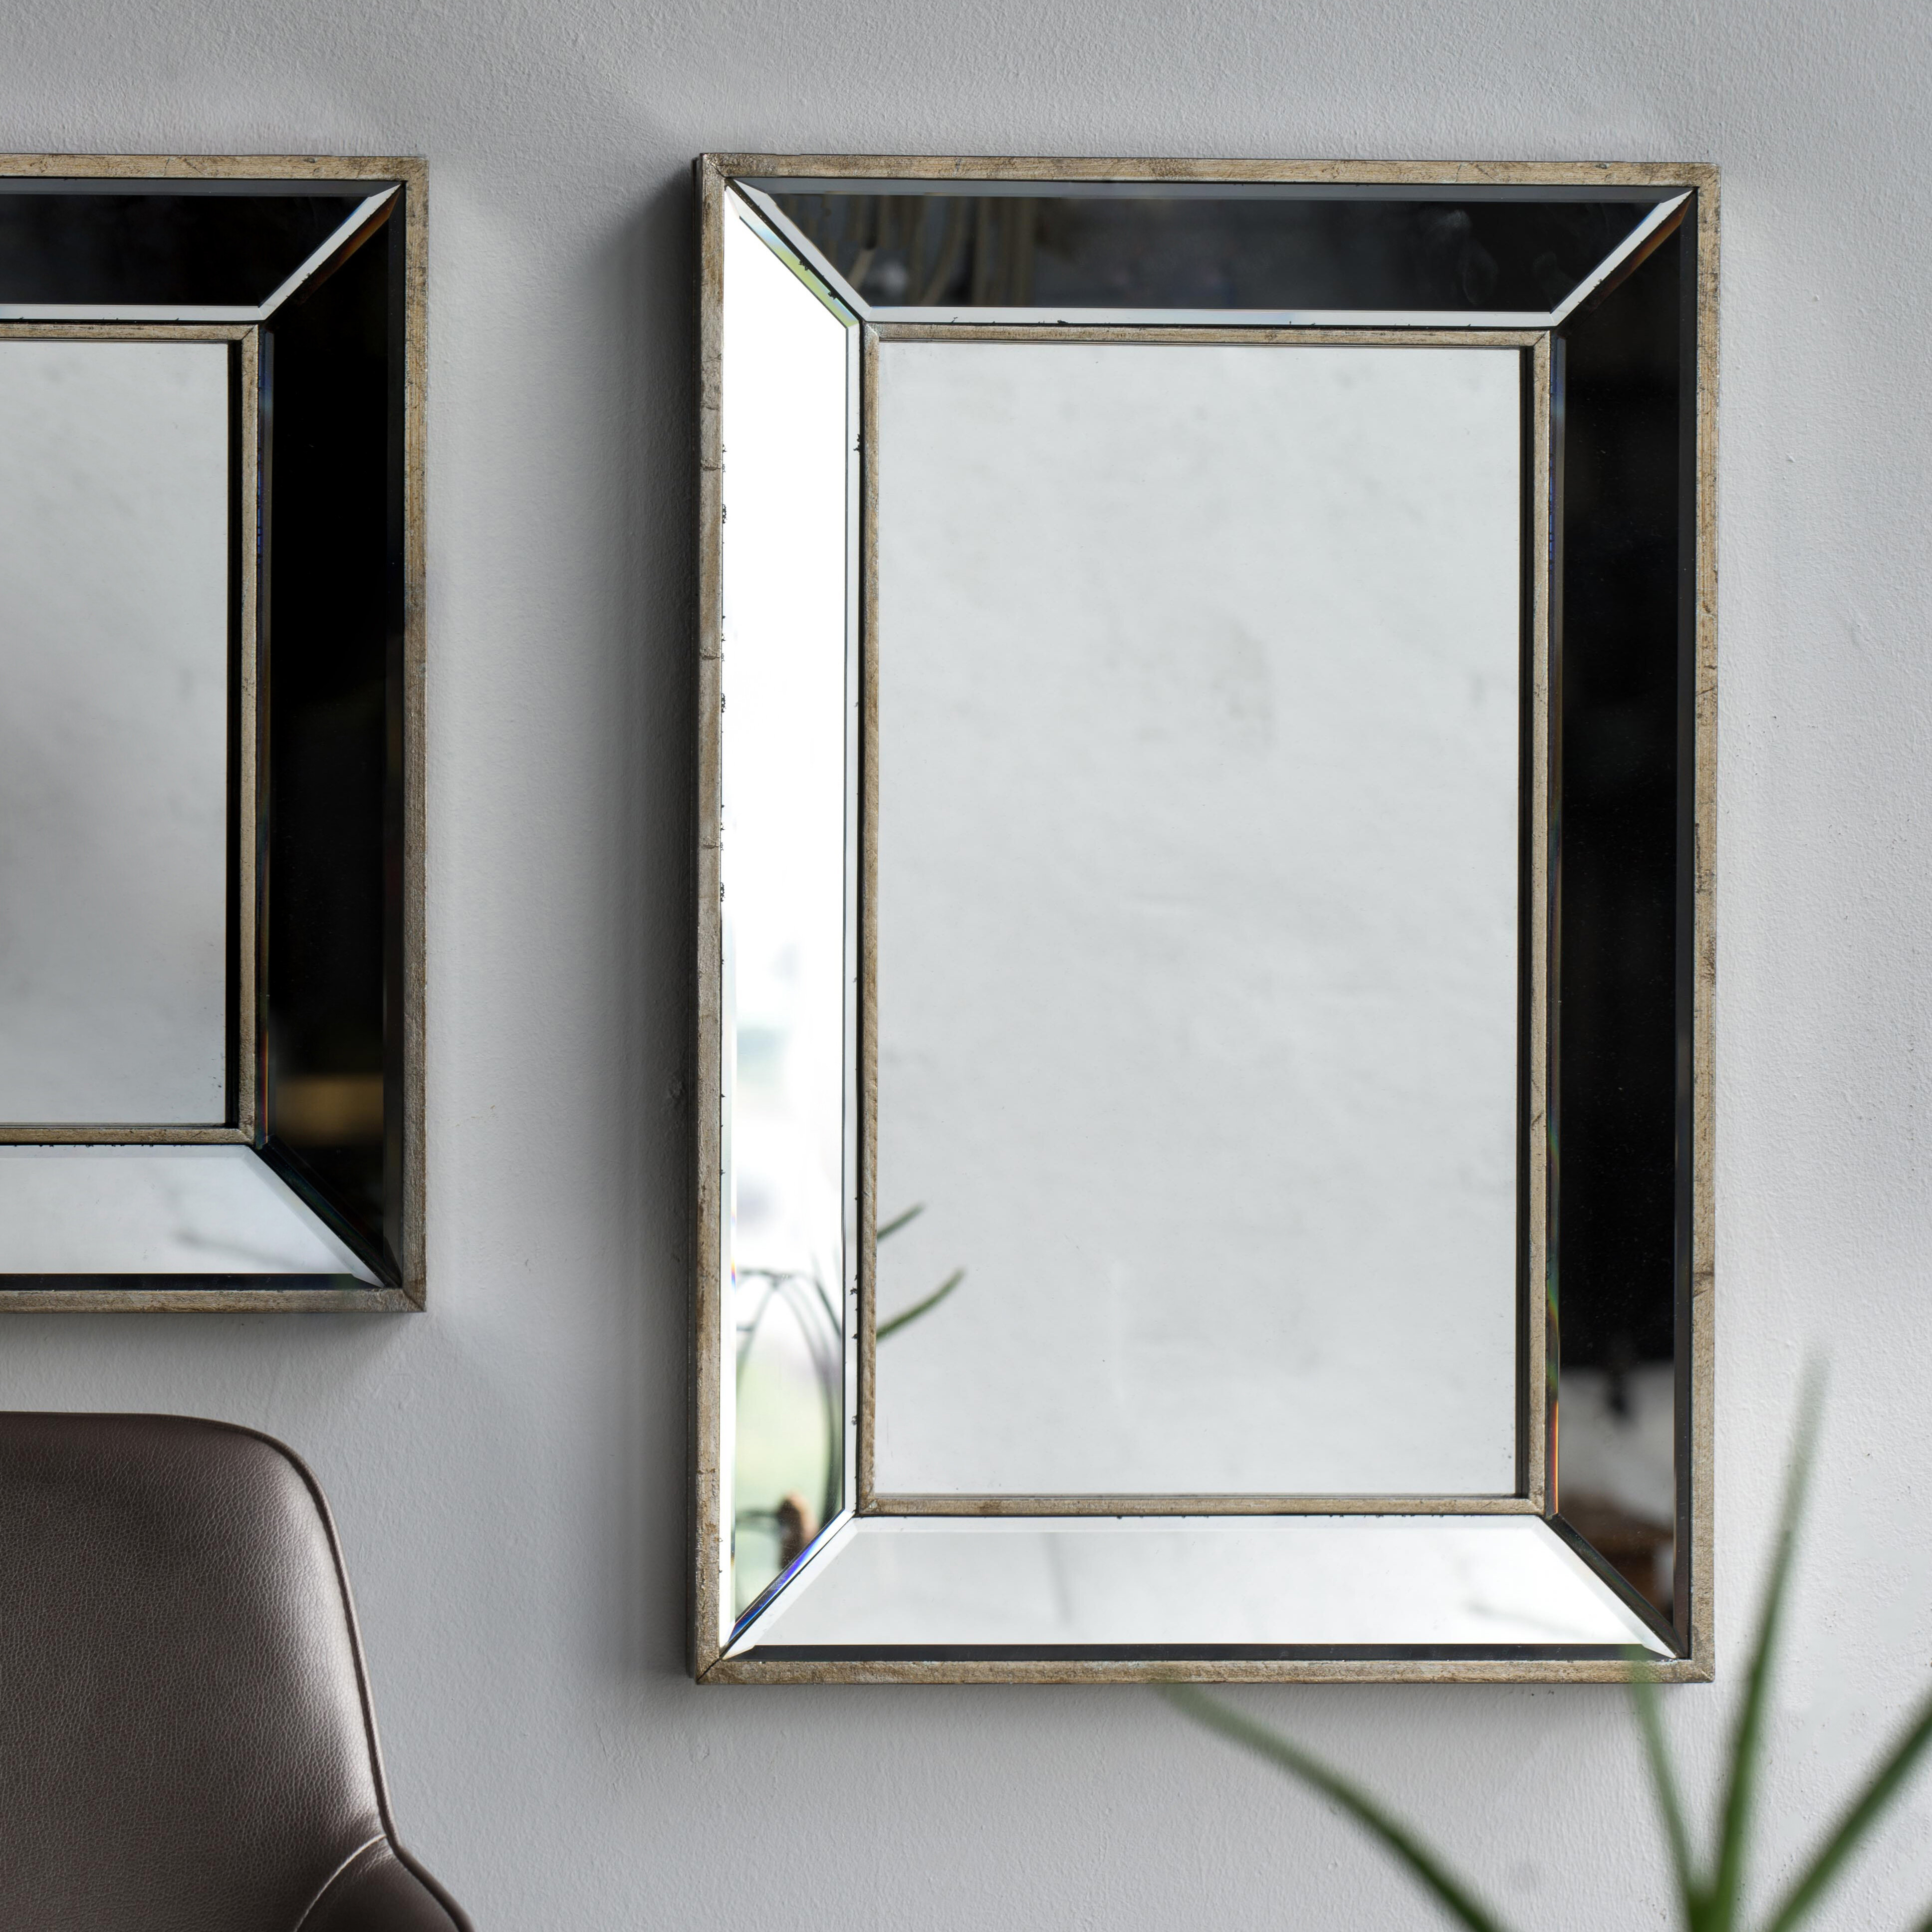 Kapp Rectangle Accent Wall Mirror Intended For Rectangle Accent Wall Mirrors (View 3 of 20)